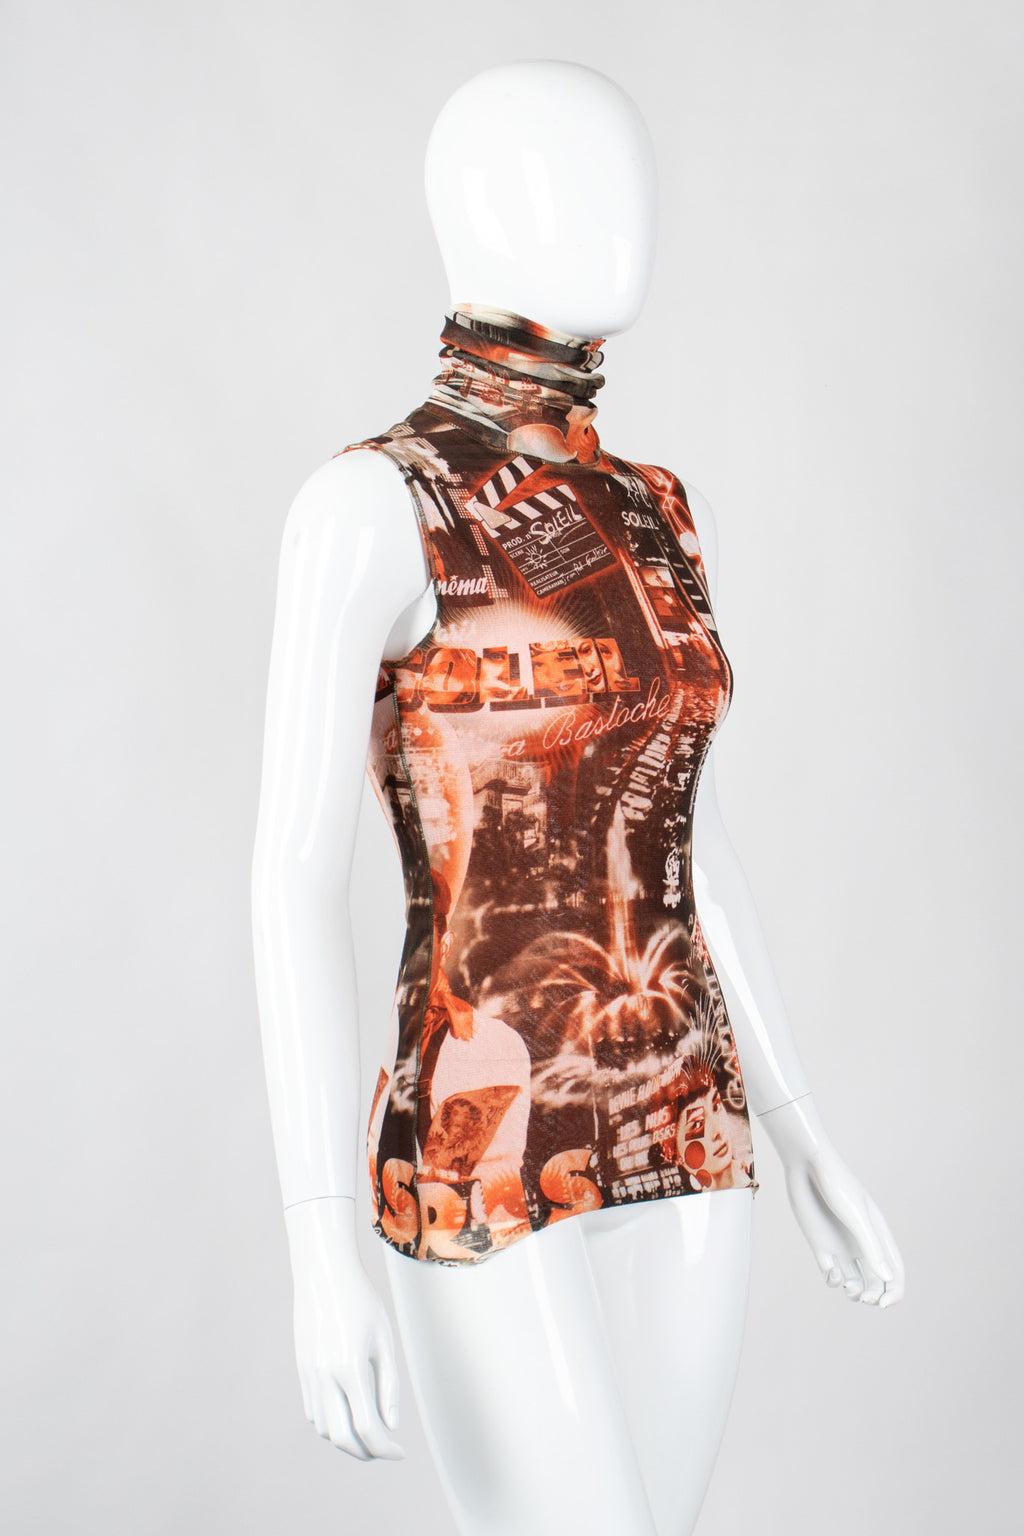 Recess Los Angeles Vintage Jean Paul Gaultier Soleil Sepia Cinema Mesh Sleeveless Top